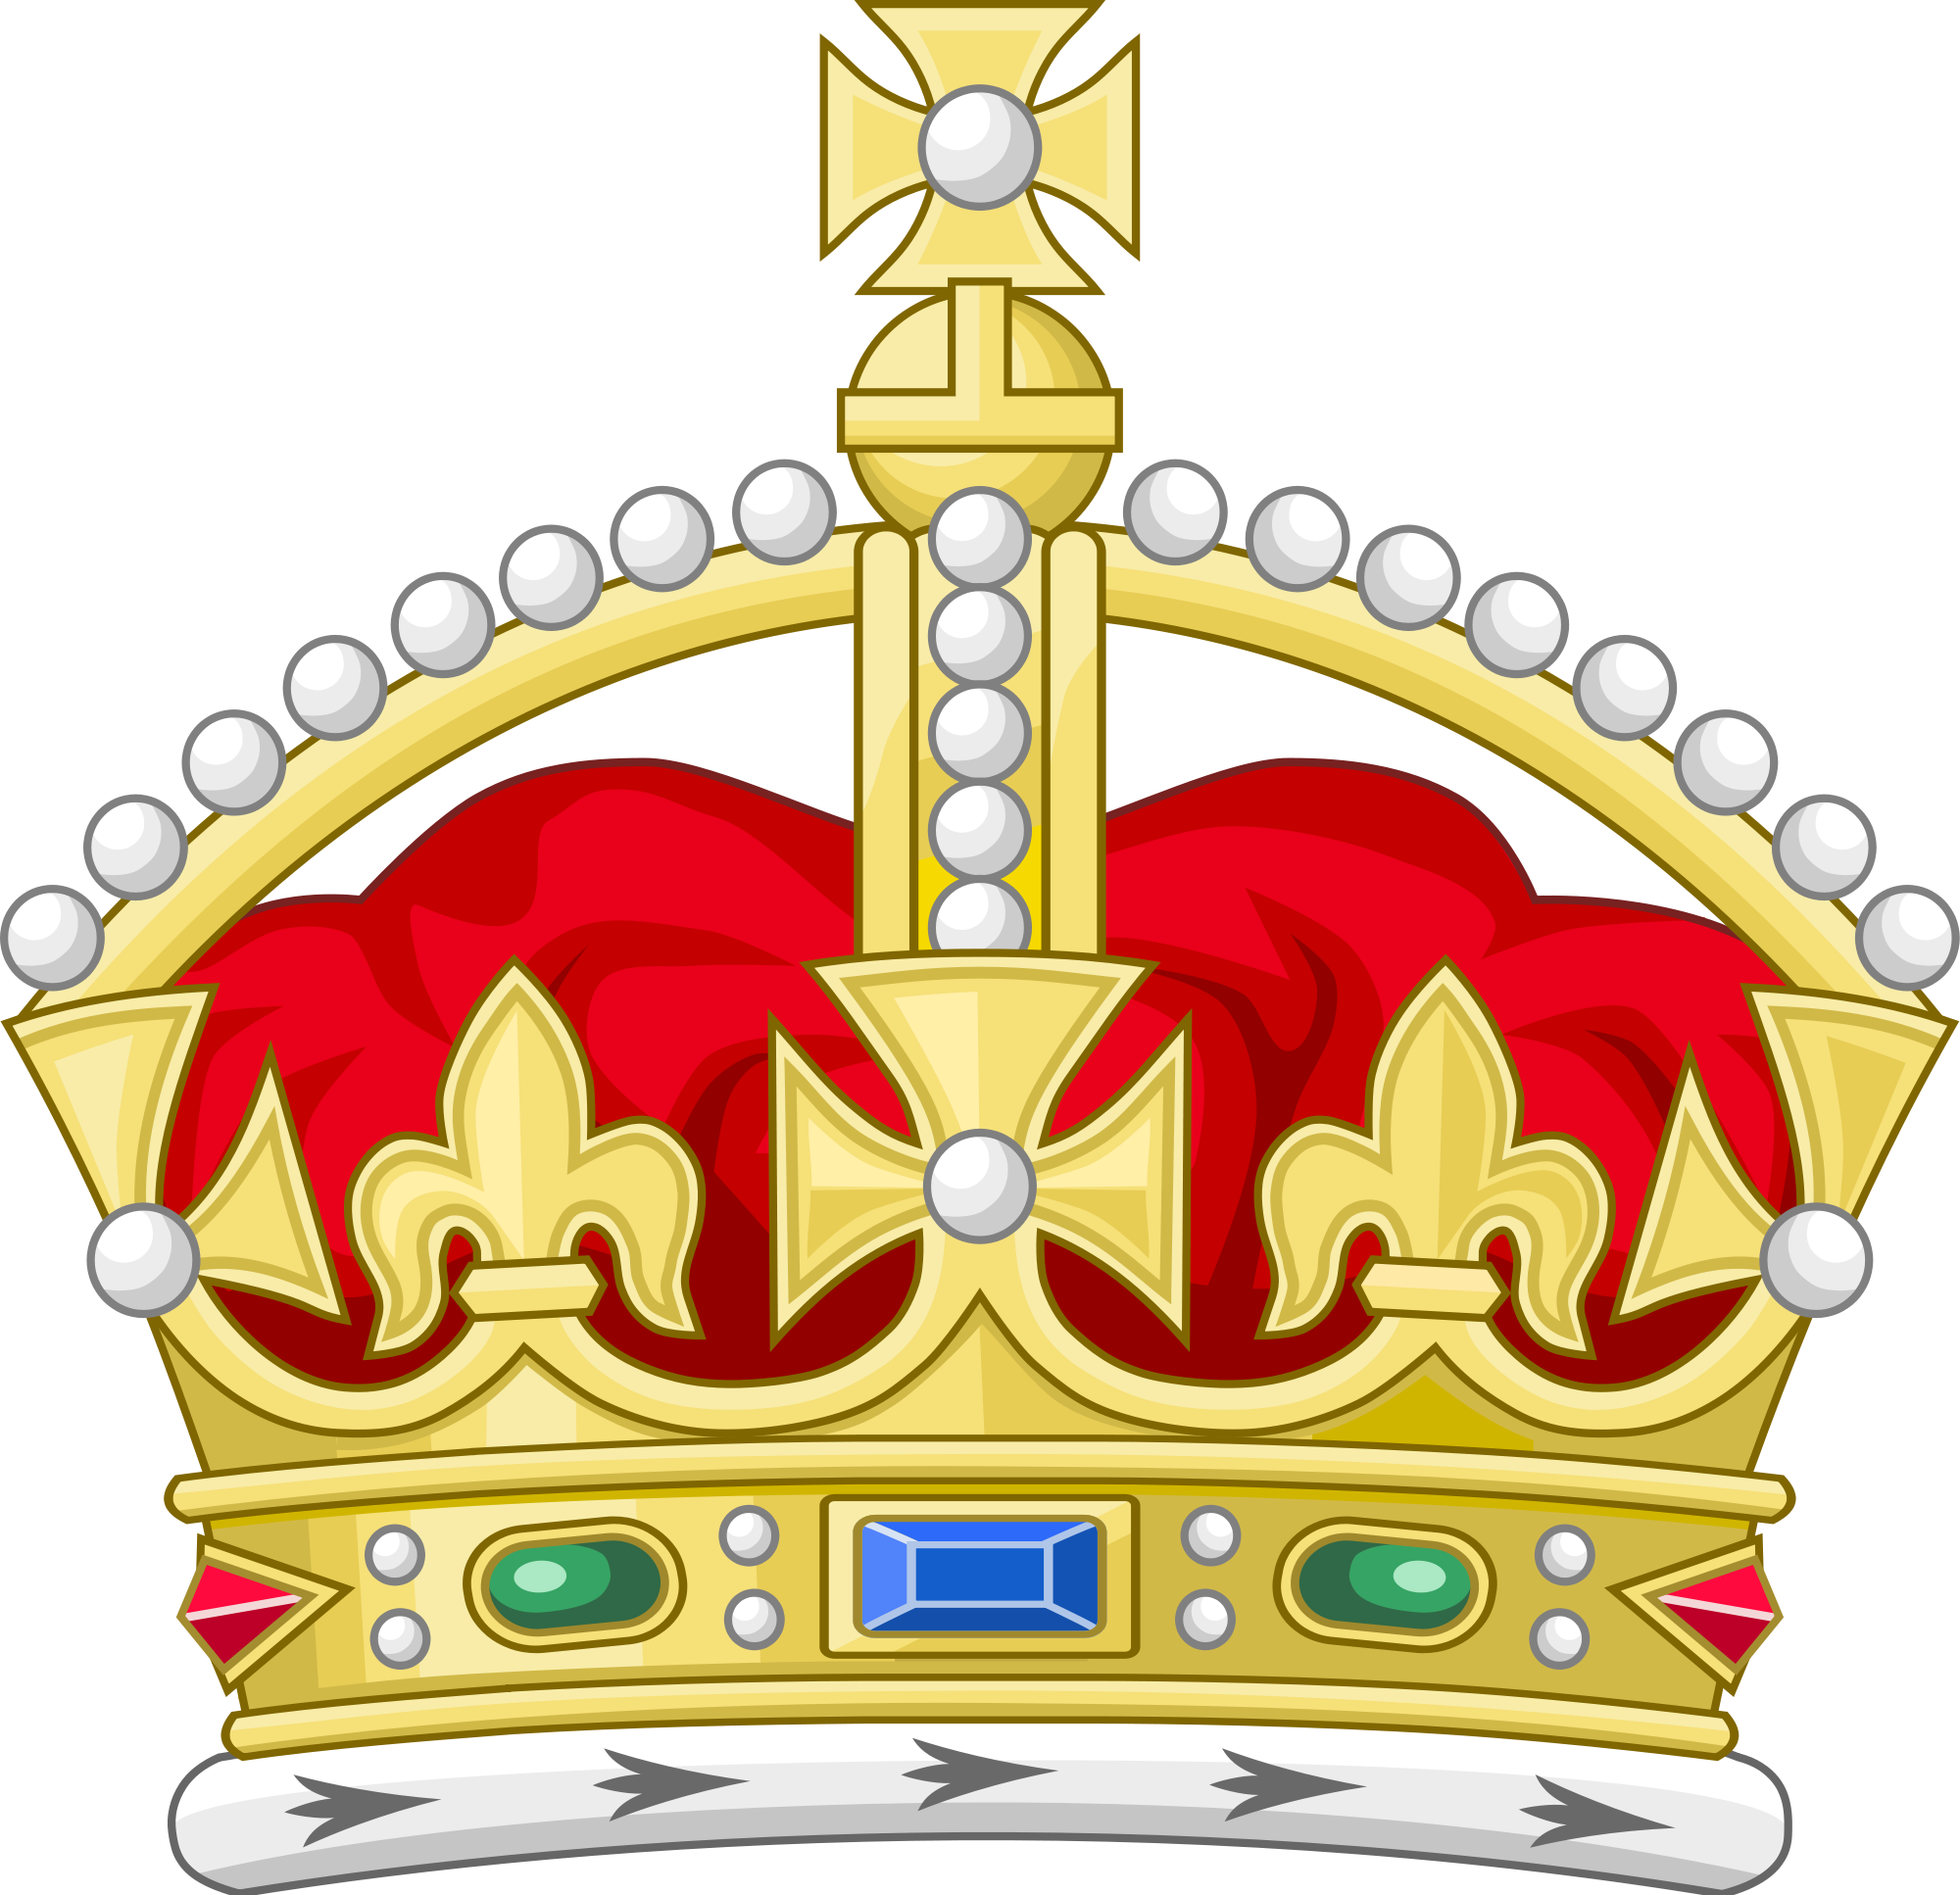 Royal queen crown clipart svg freeuse library Tudor Crown (heraldry) - Wikipedia svg freeuse library